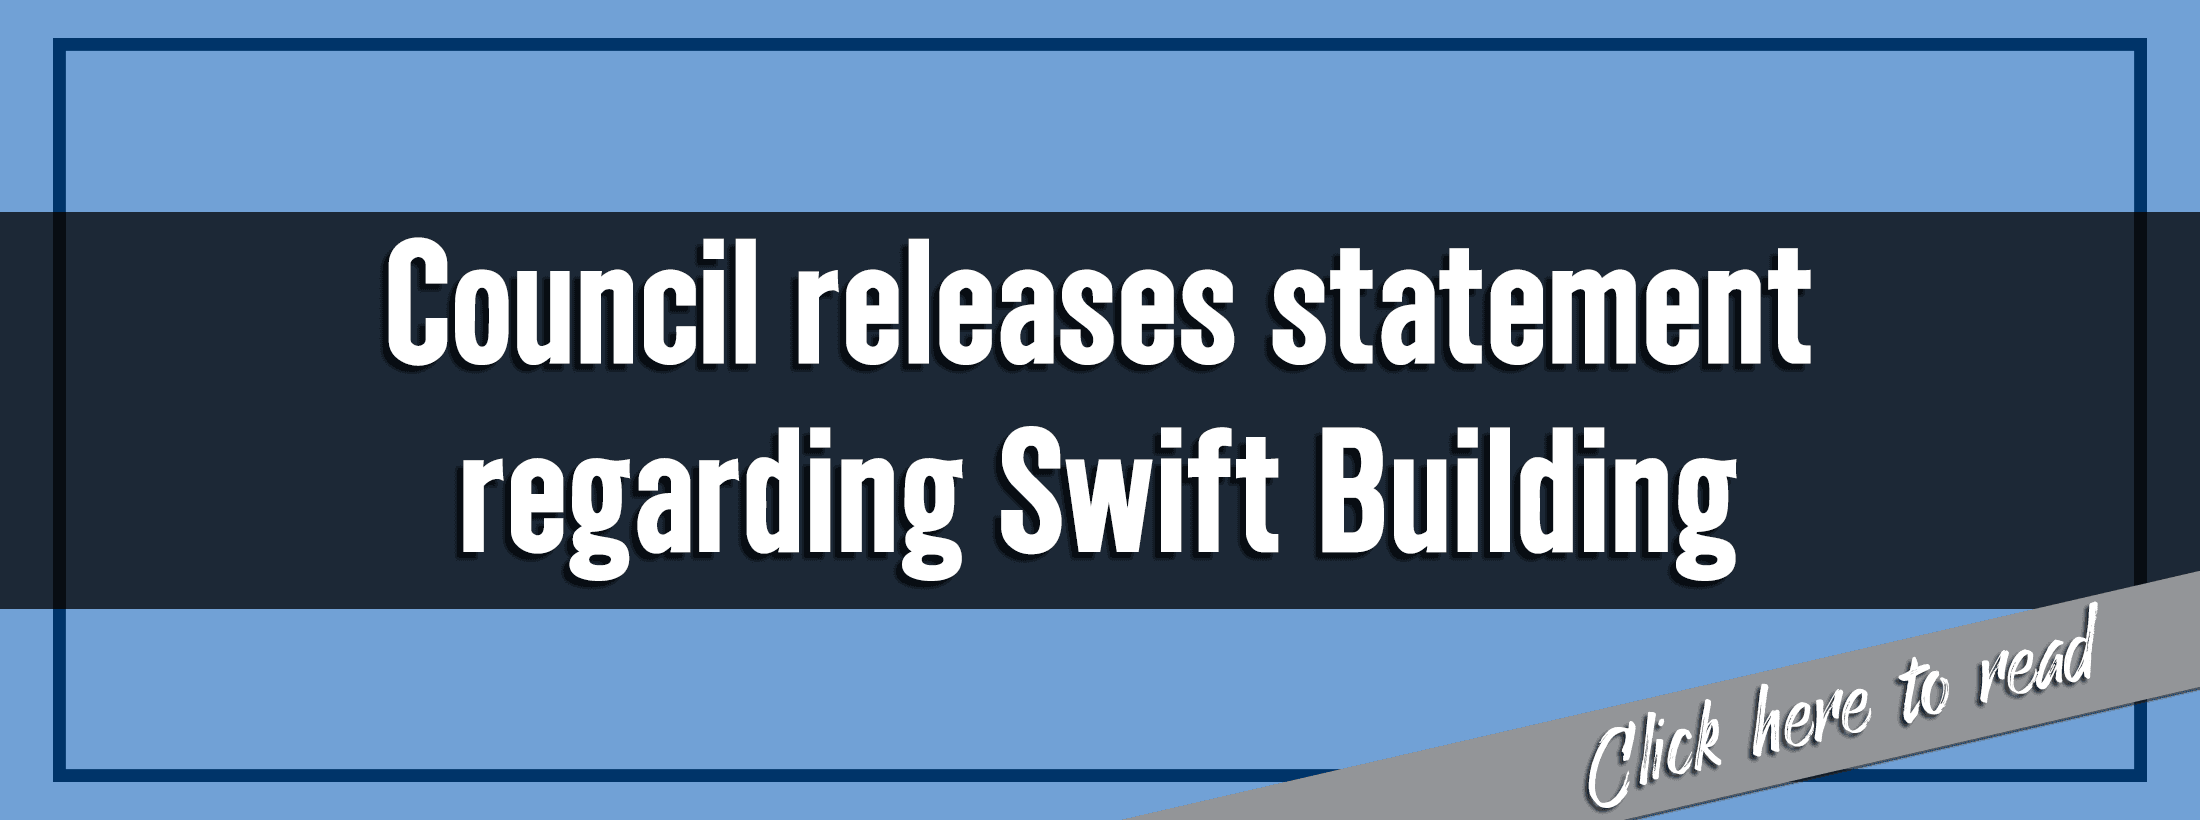 City Council releases statement regarding Swift Building